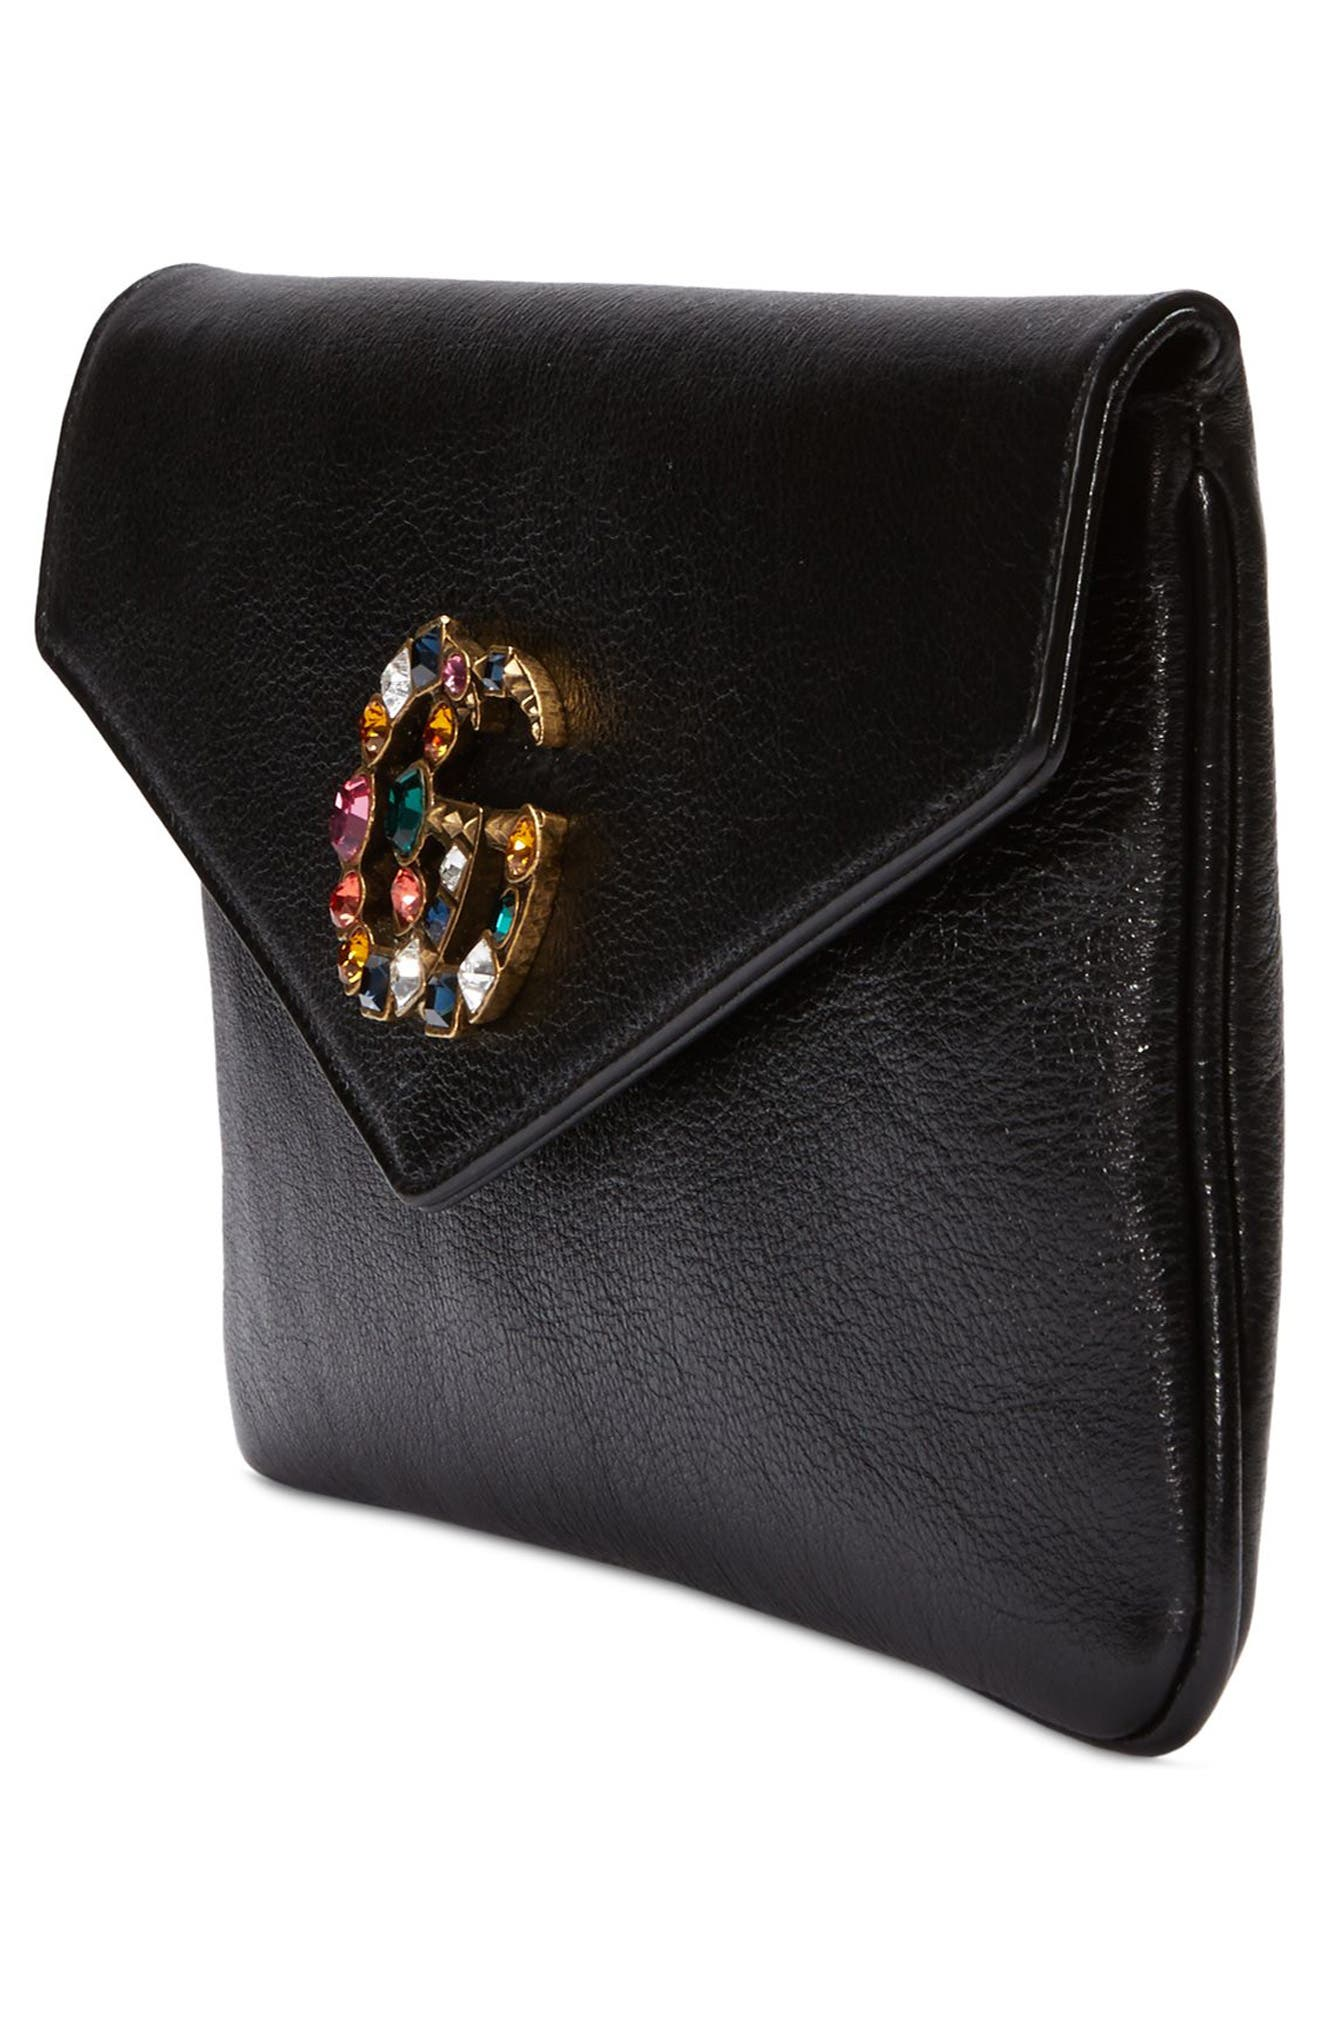 Broadway Crystal GG Leather Envelope Clutch,                             Alternate thumbnail 4, color,                             Nero Multi